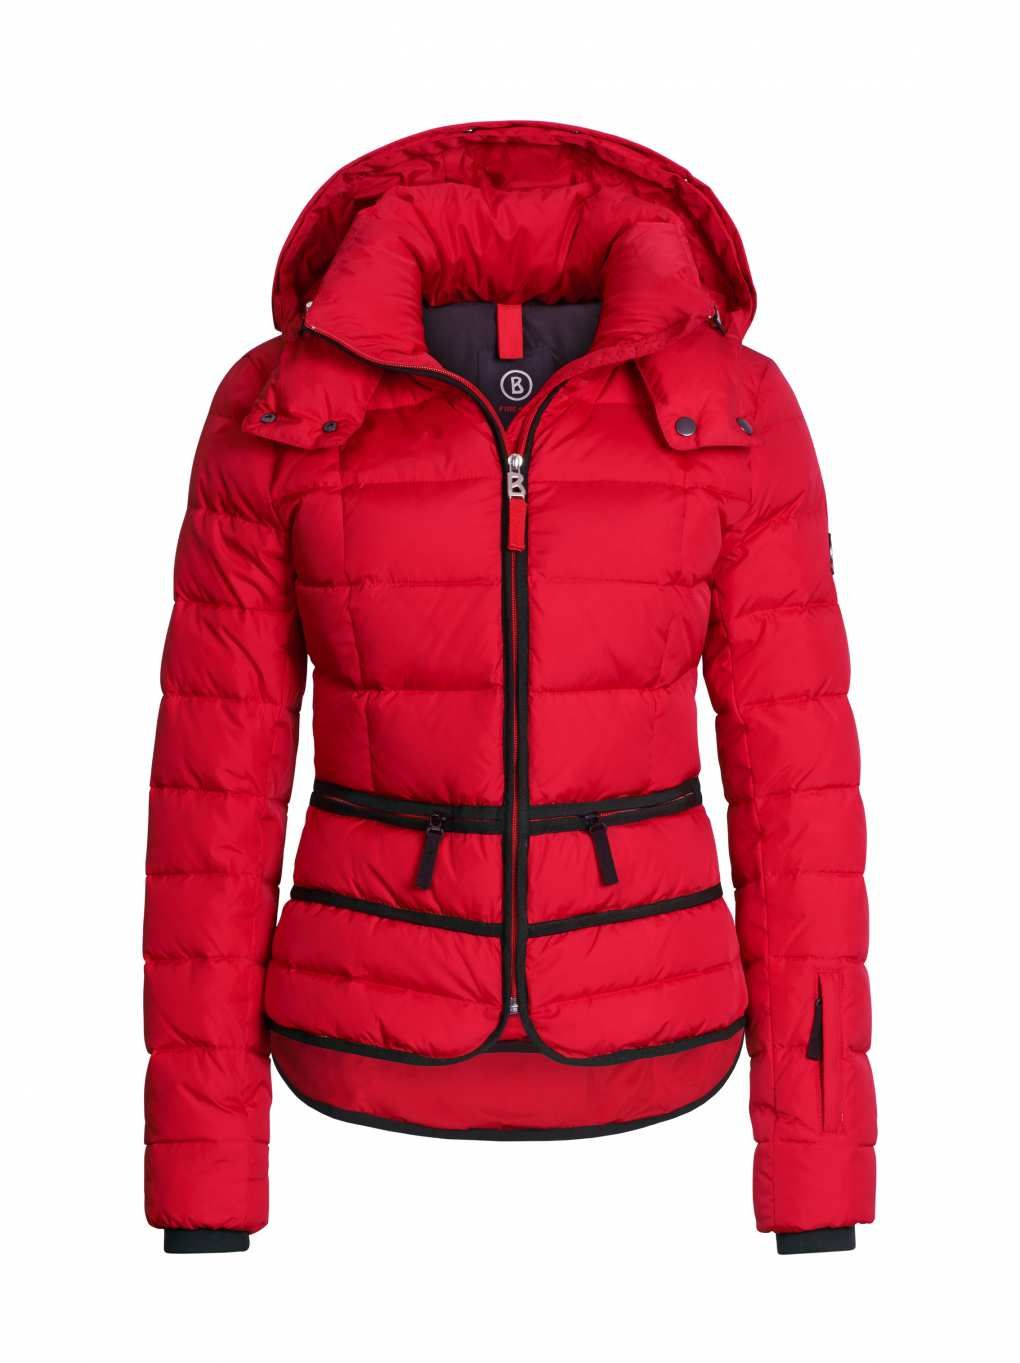 DOWN SKI JACKET IMY in Red for Women  84ee4e935